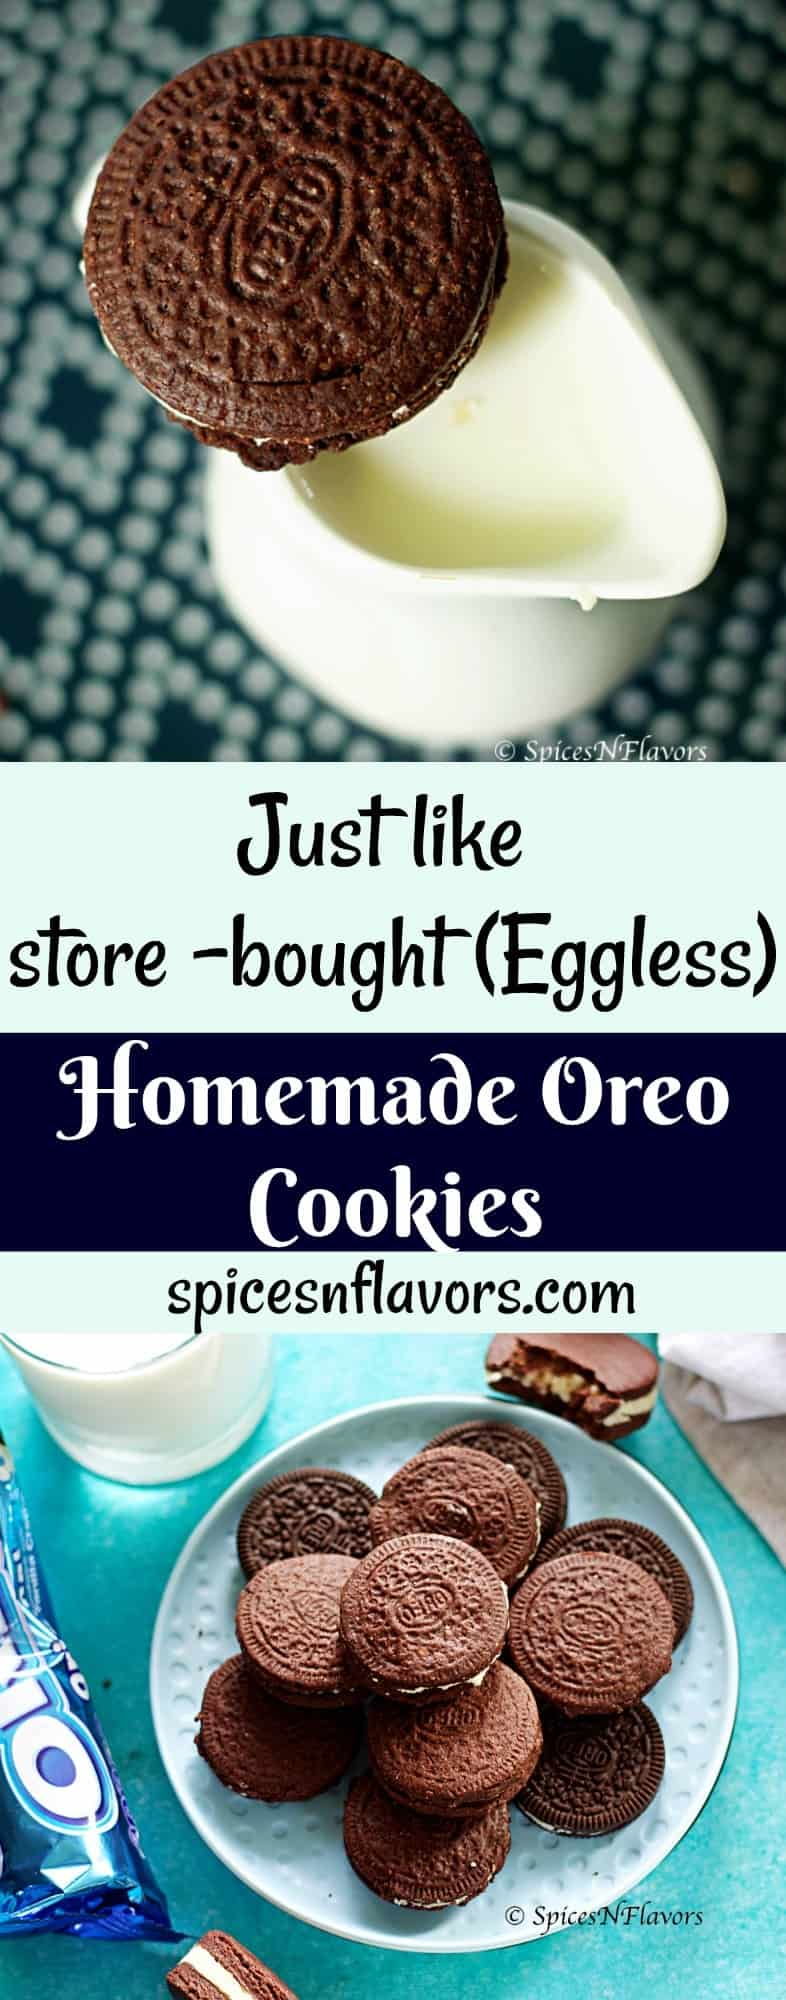 pin image of eggless homemade oreo cookies